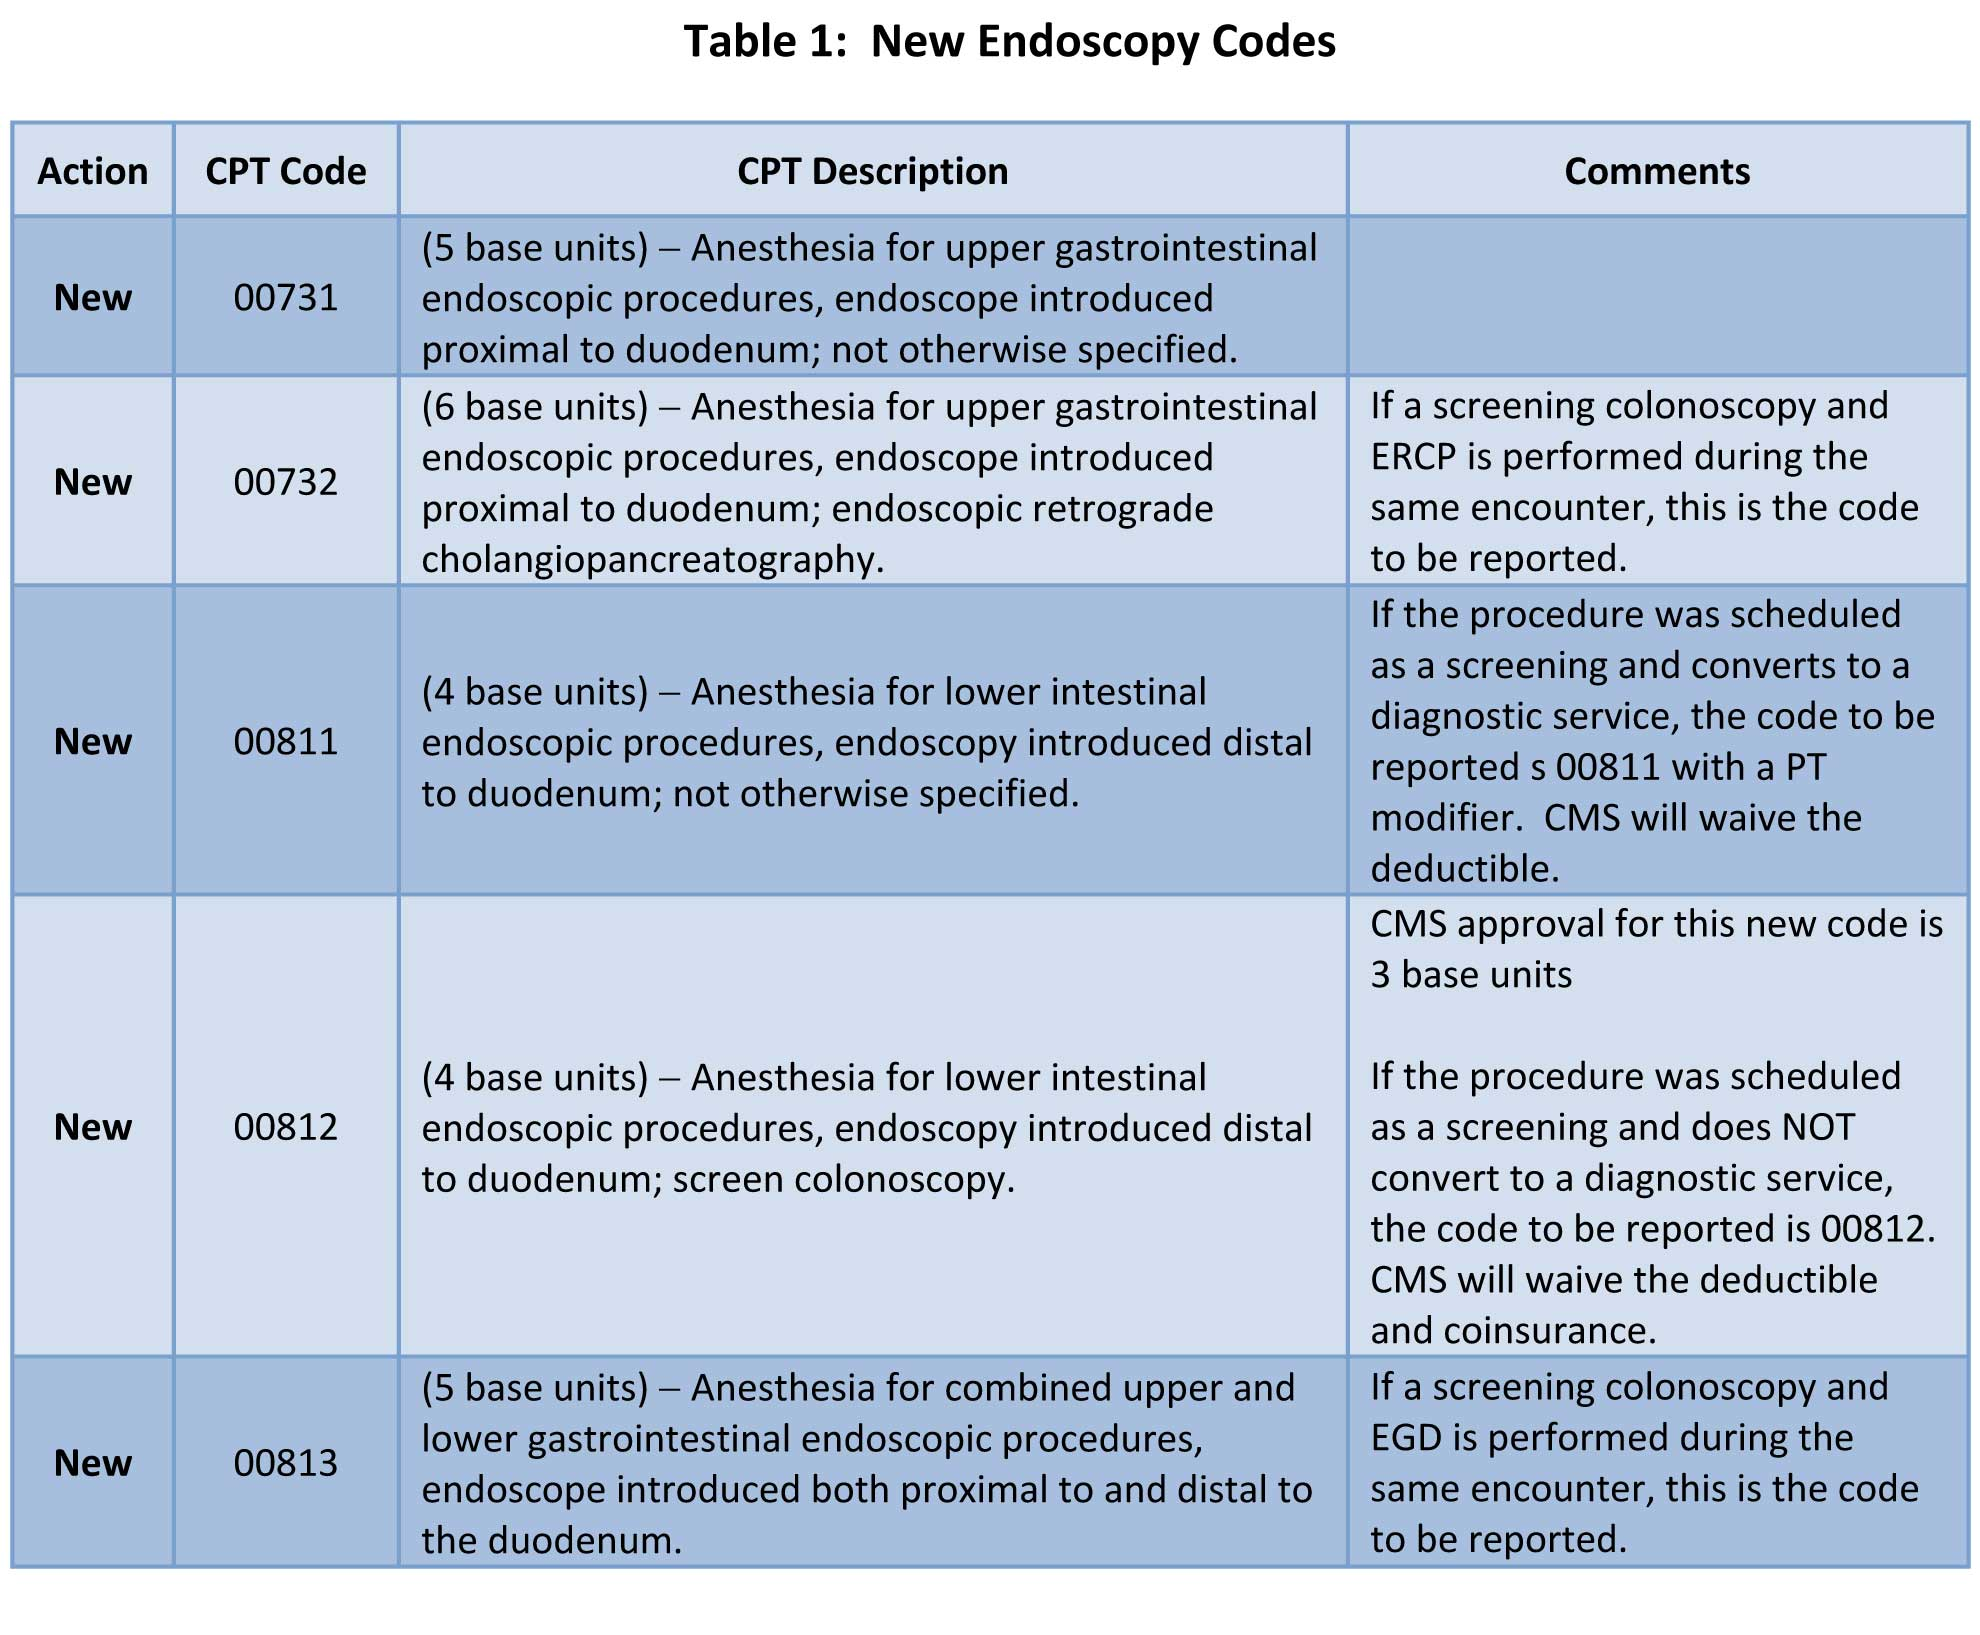 To Assess The Potential Financial Impact Of These New Codes We Reviewed Endoscopic Activity For 27 ABC Clients Across Country Comparing From